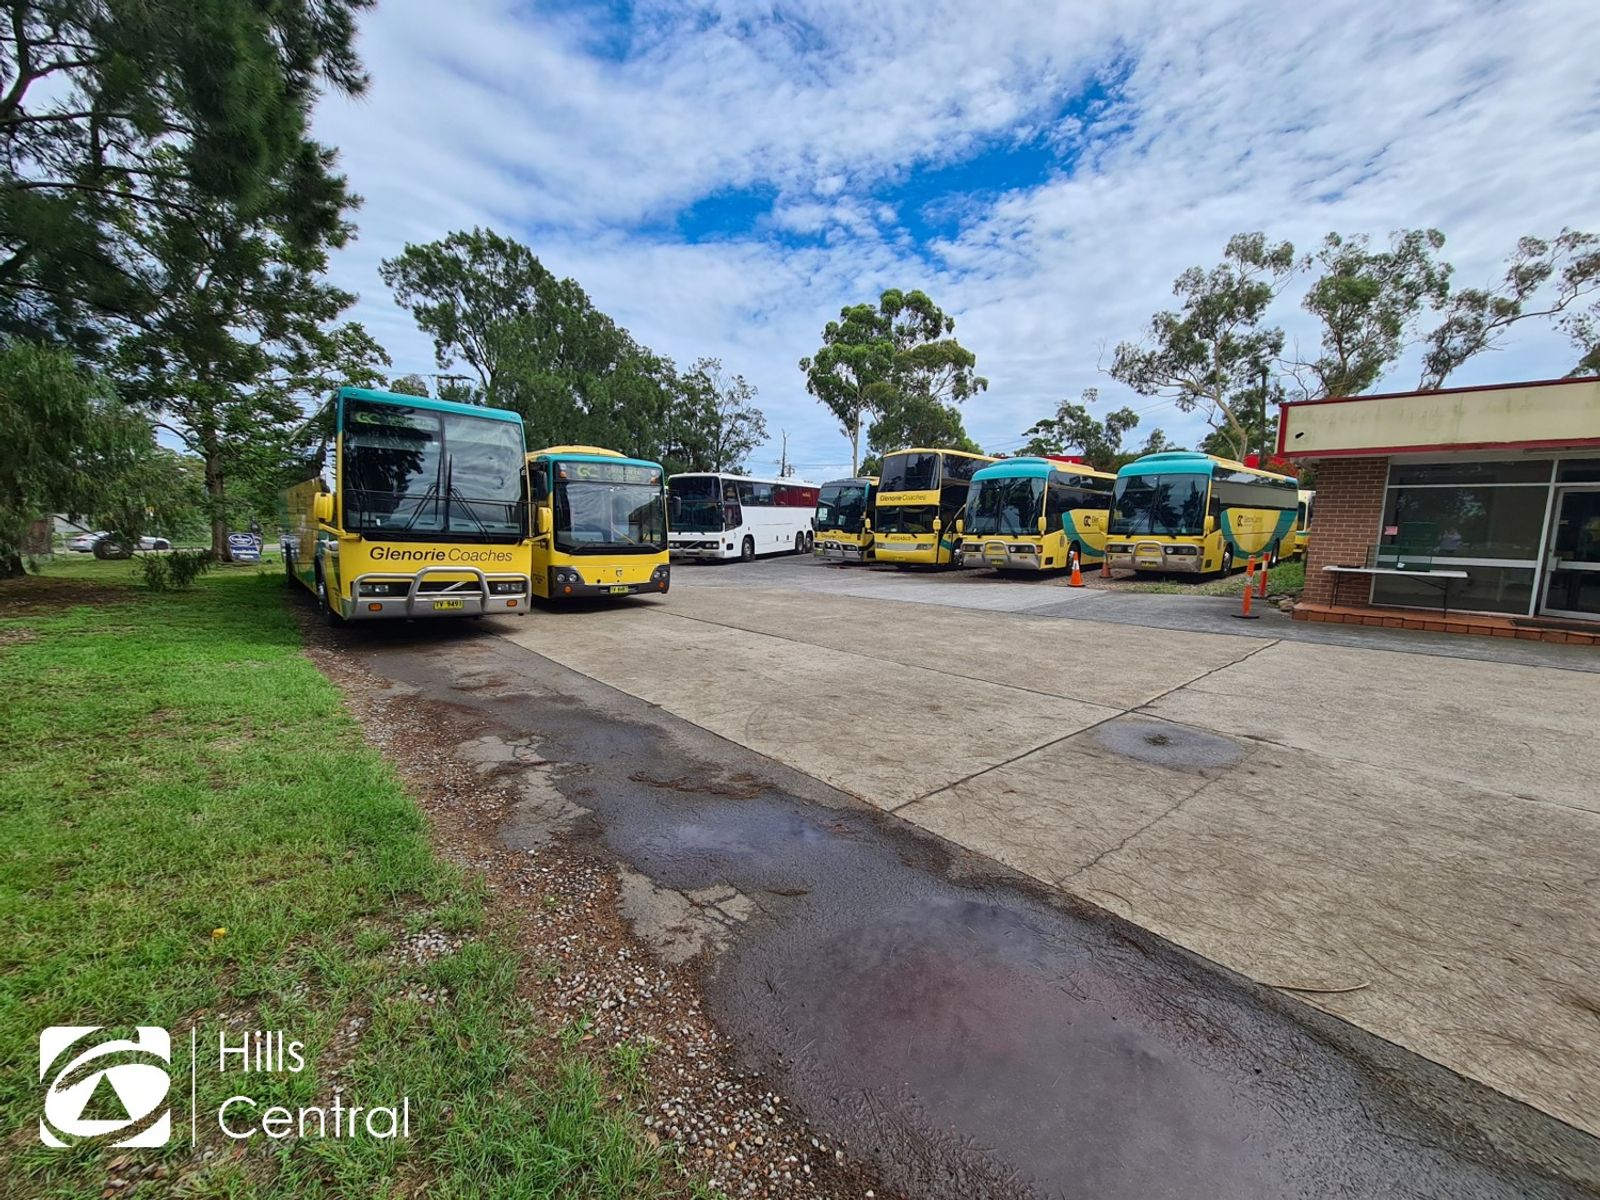 236A New Line Road, Dural, NSW 2158